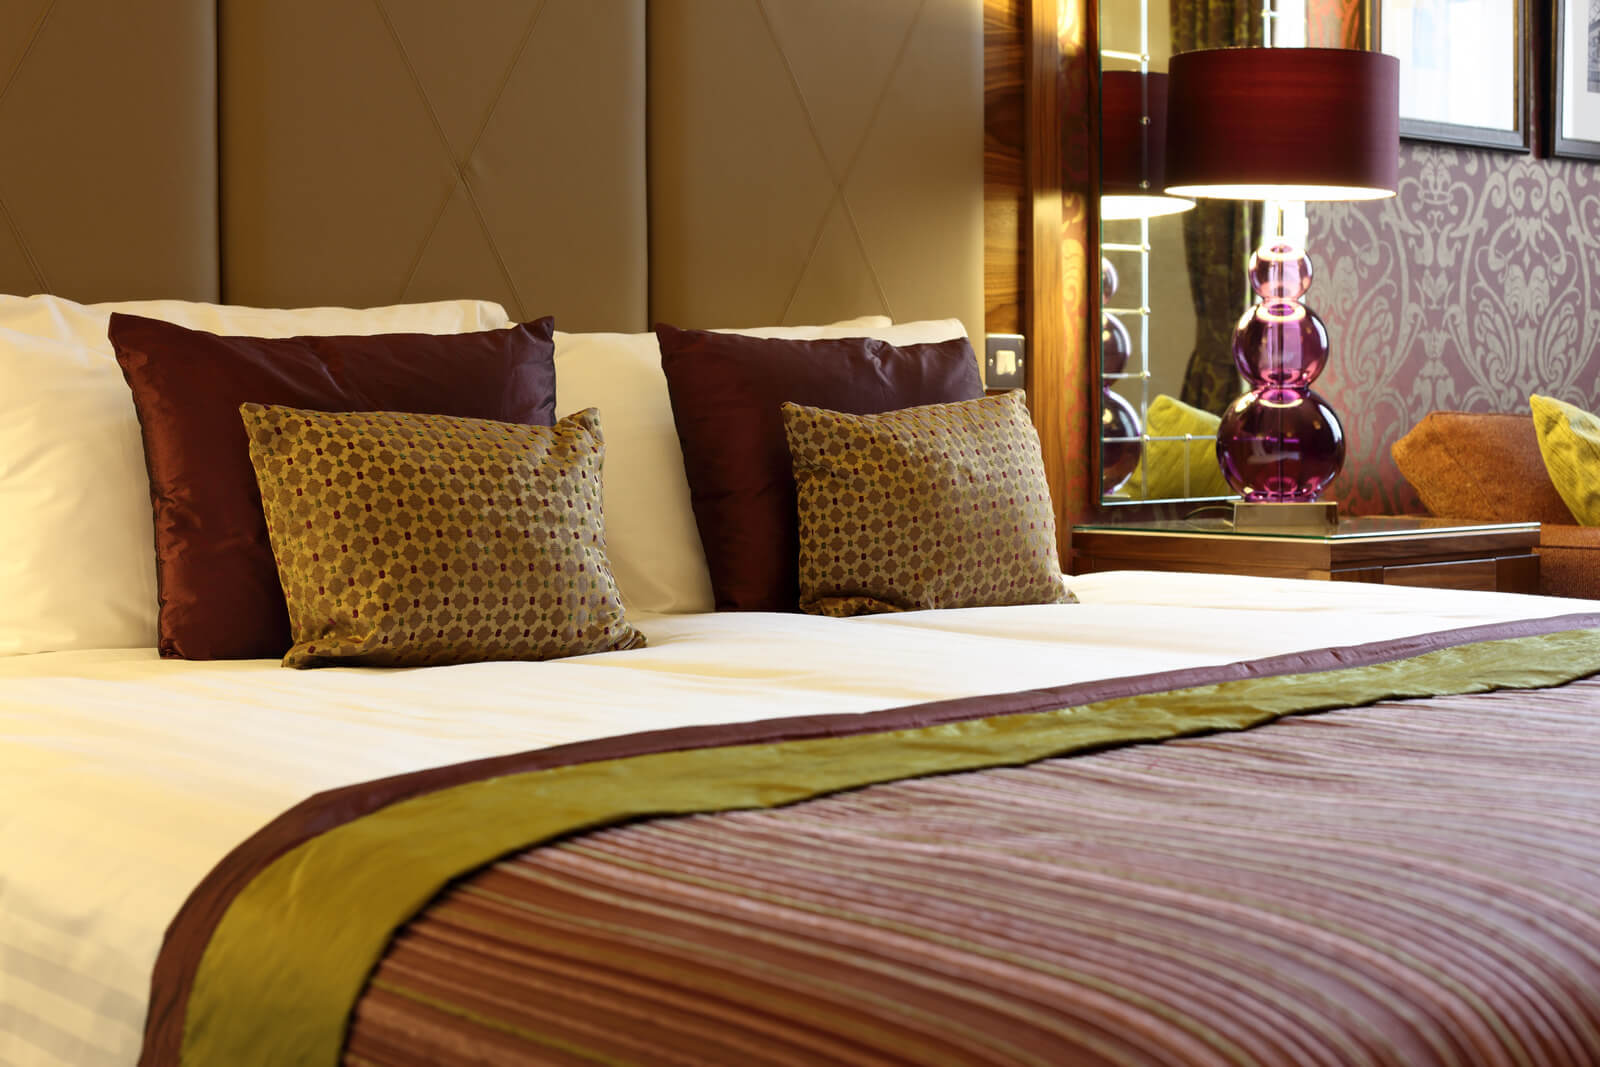 housekeeping hospitality cleaning